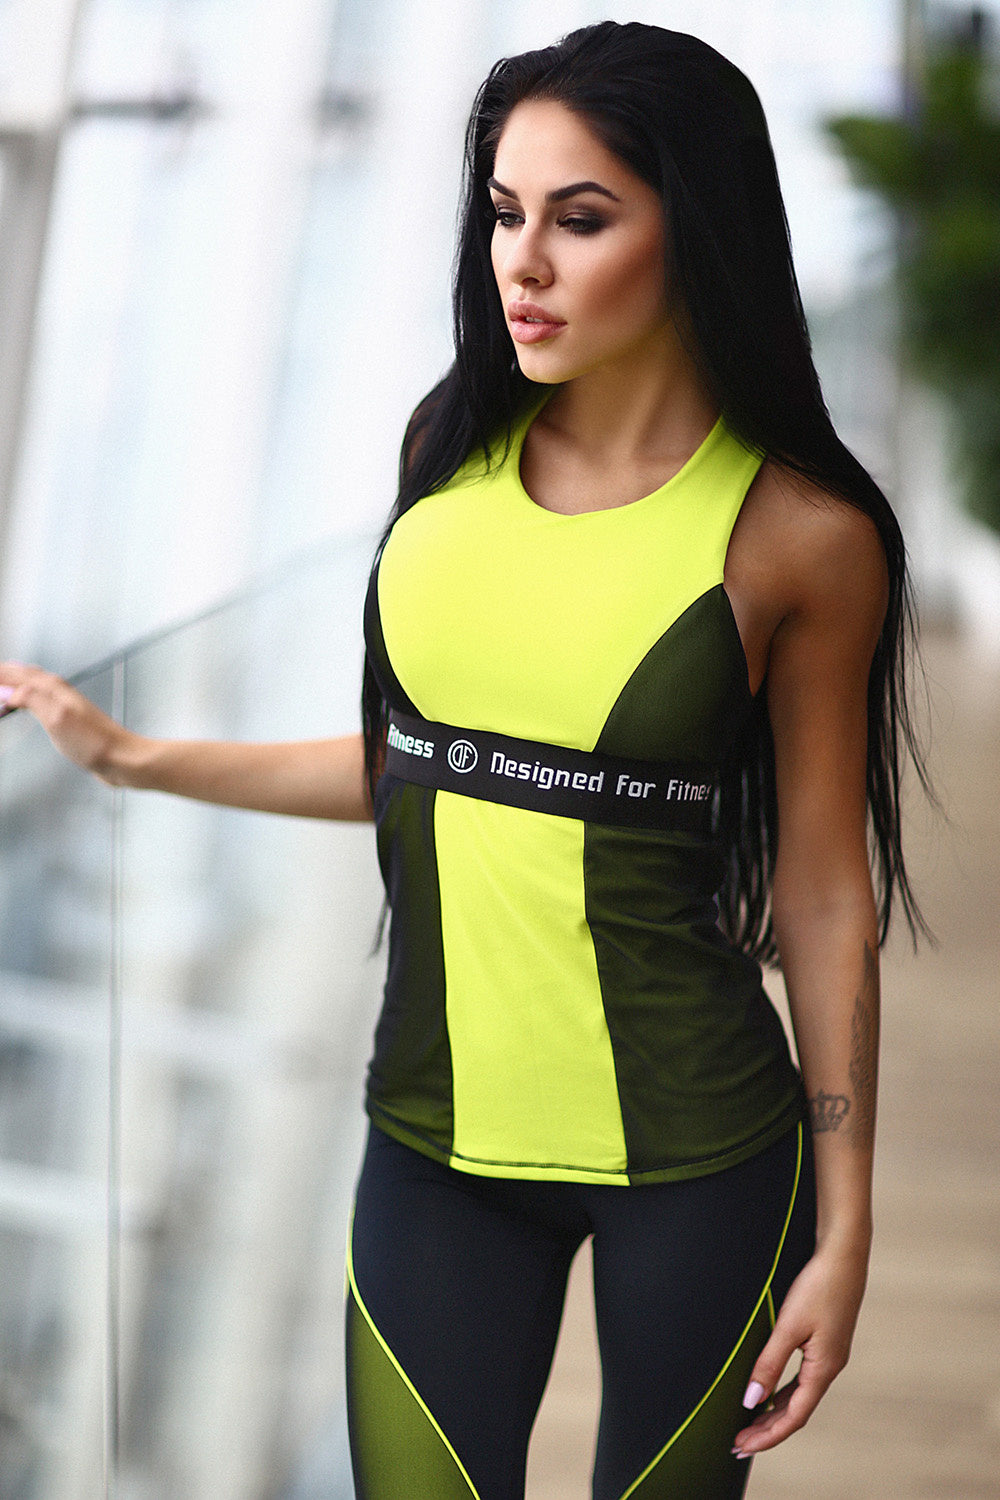 SHIRT PRO BEAT - Designed for Fitness